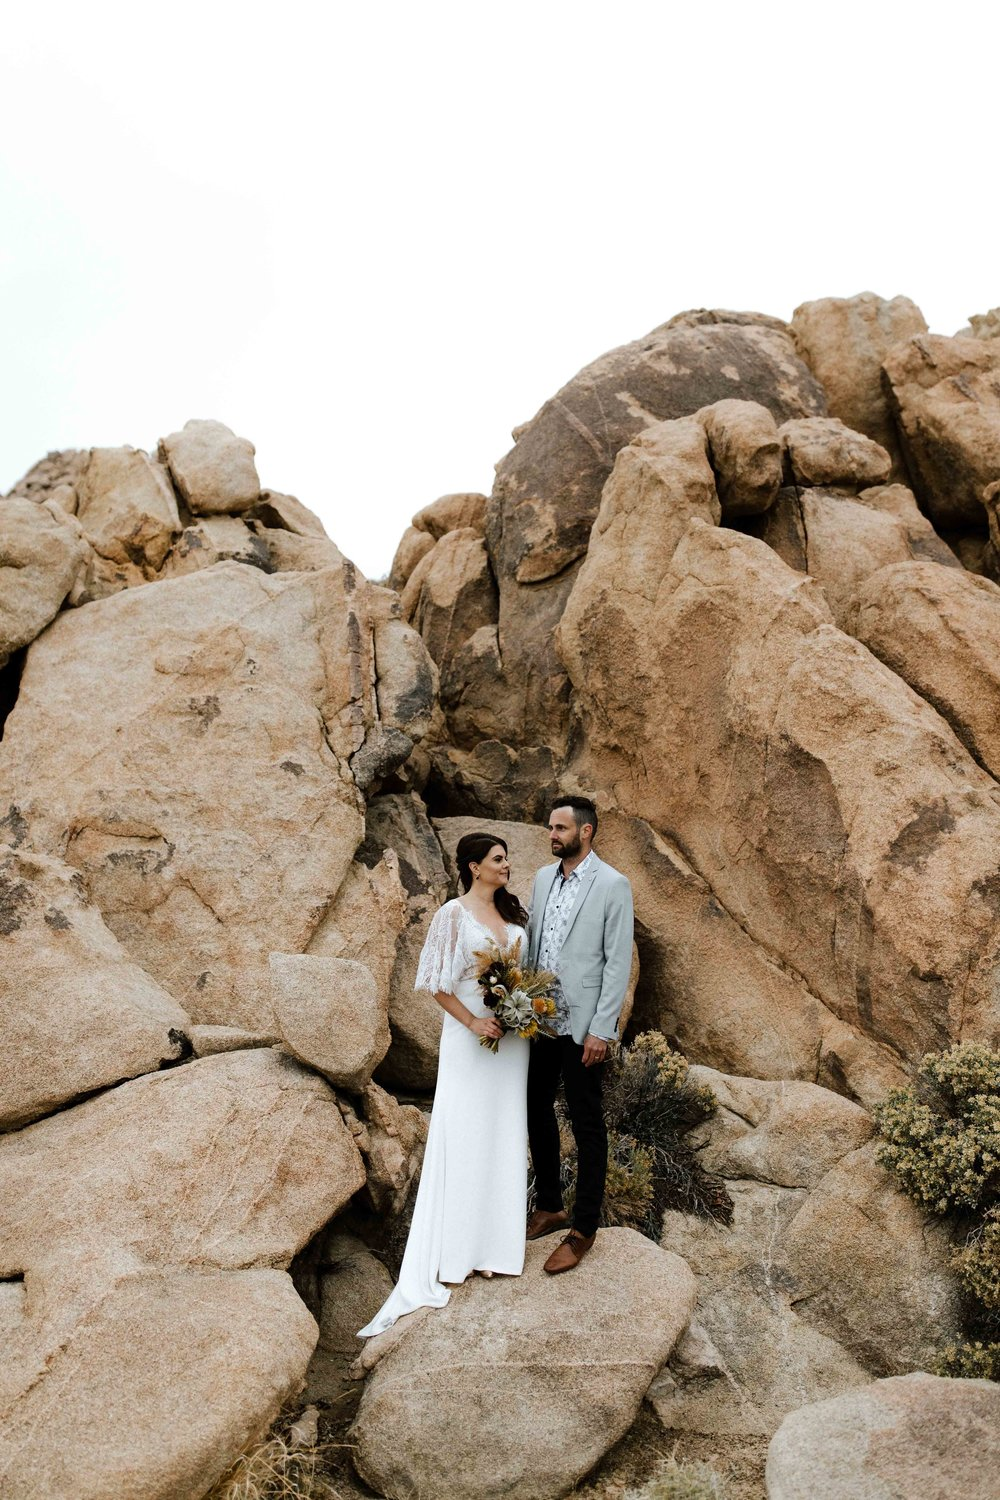 America Joshua Tree Palm Springs Elopement wedding-42.jpg